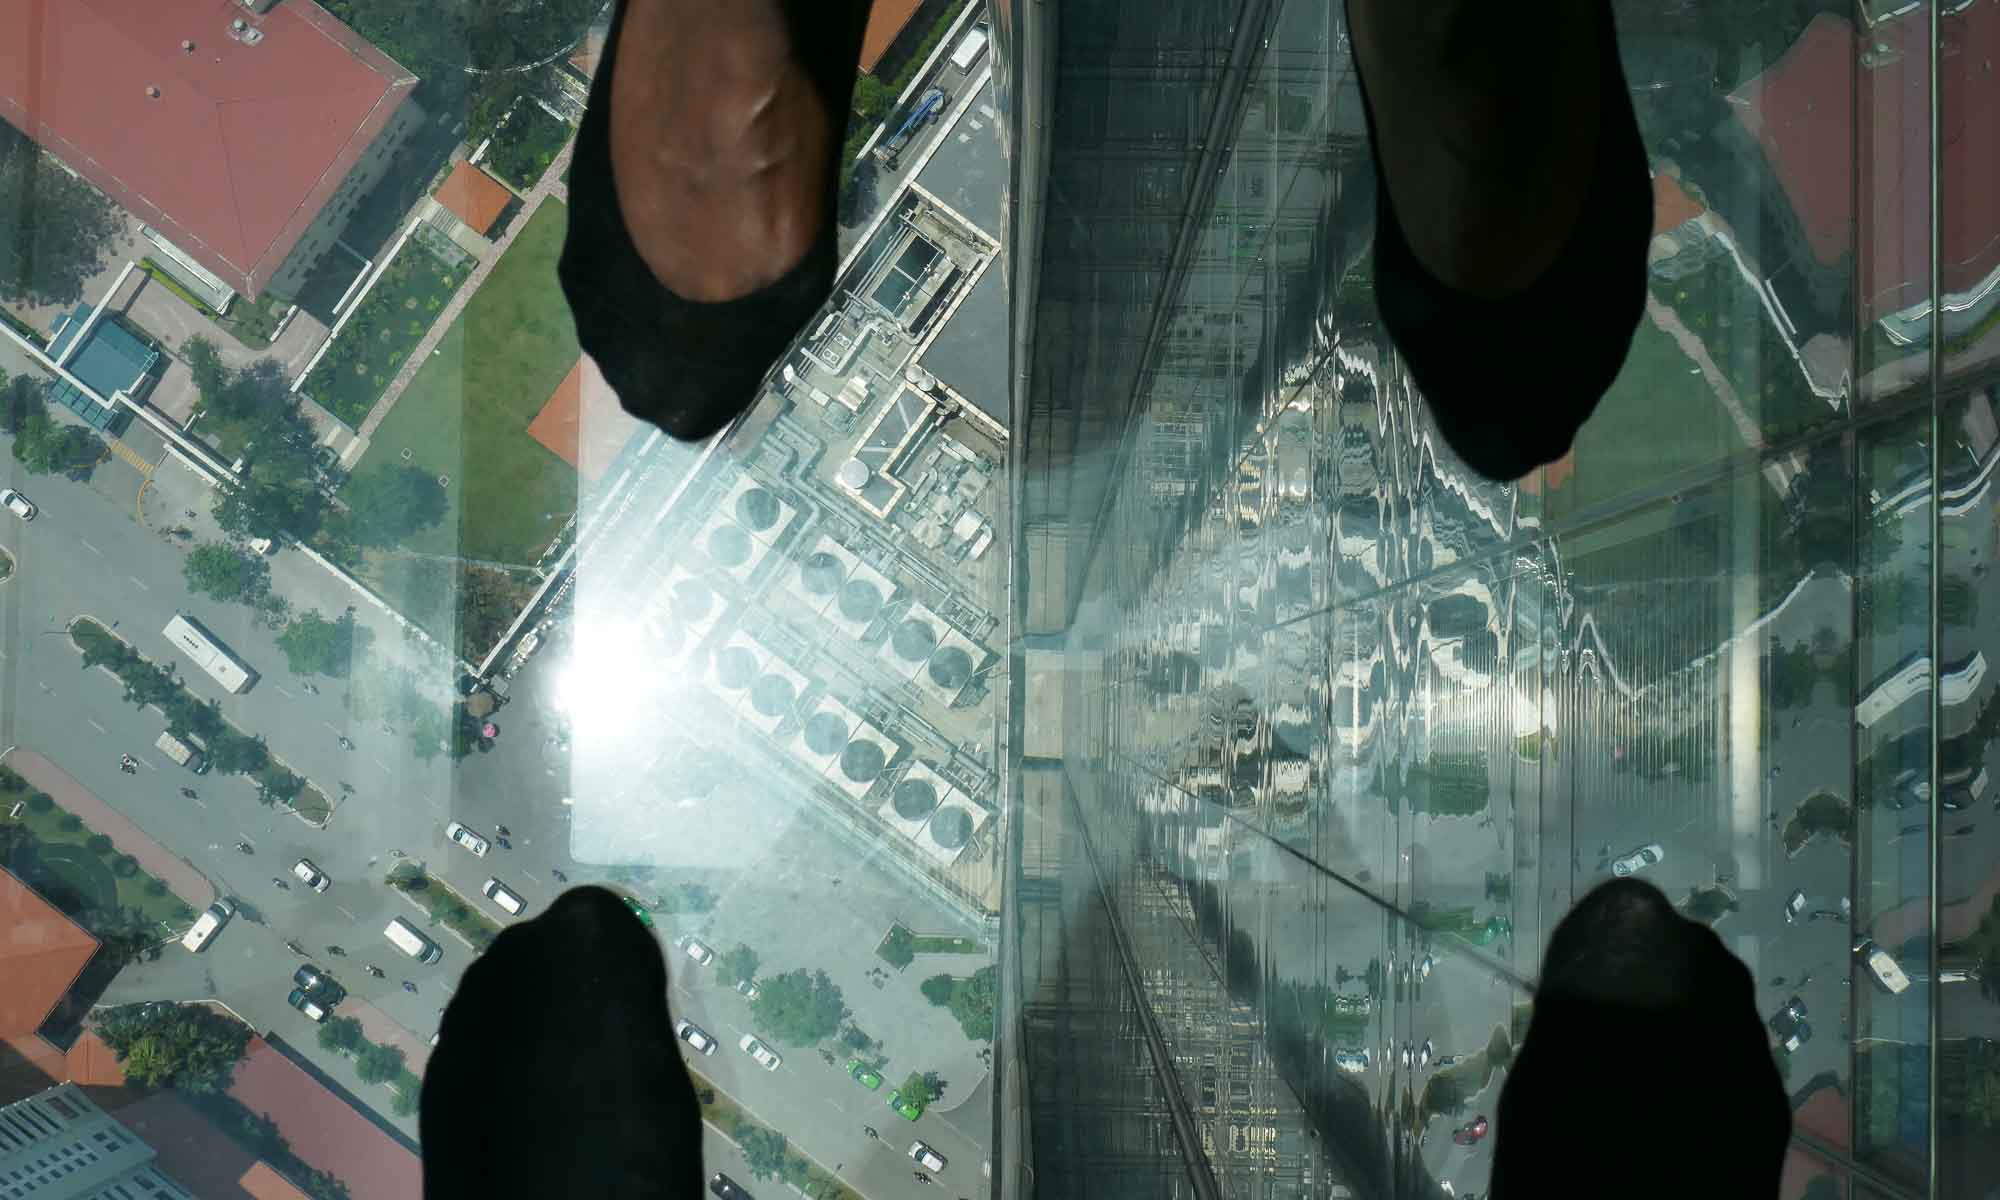 Looking down 250 m on one of the skywalks